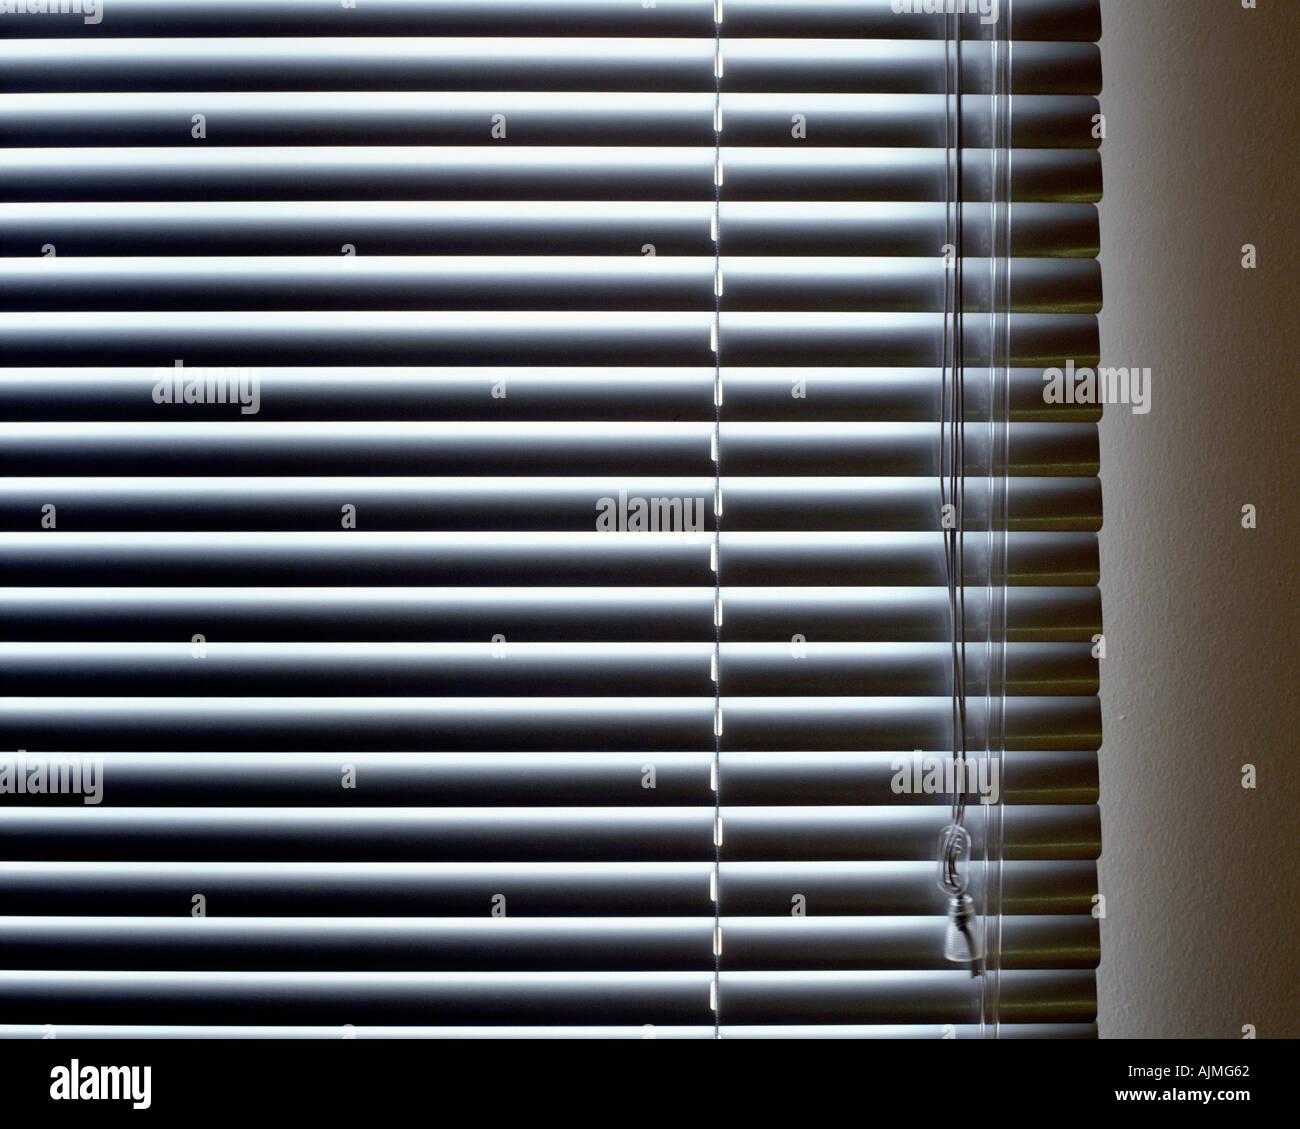 Closed blinds - Stock Image